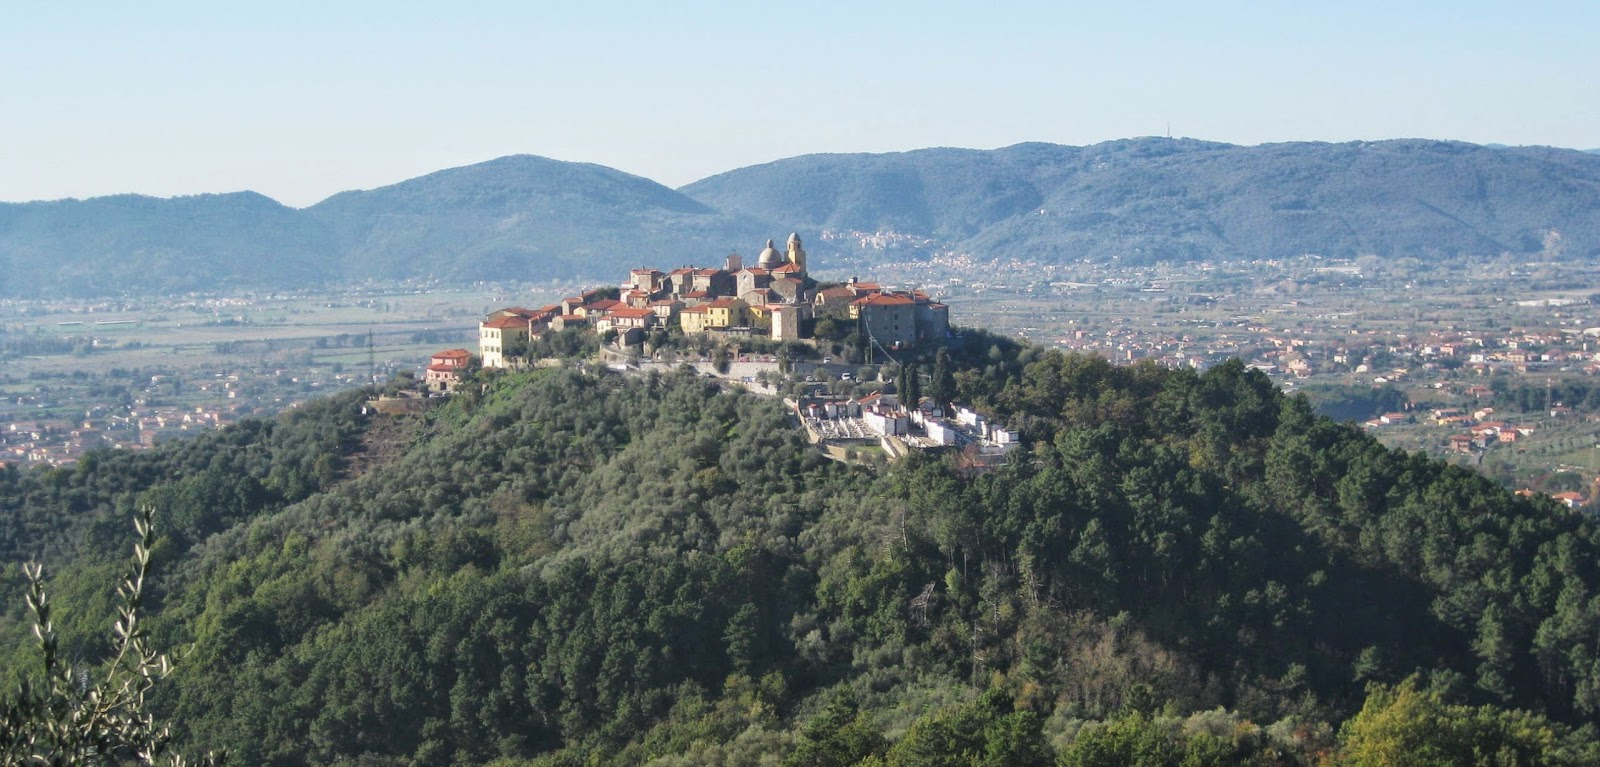 The hill town of Nicola overlooking the plain in lower Lunigiana.